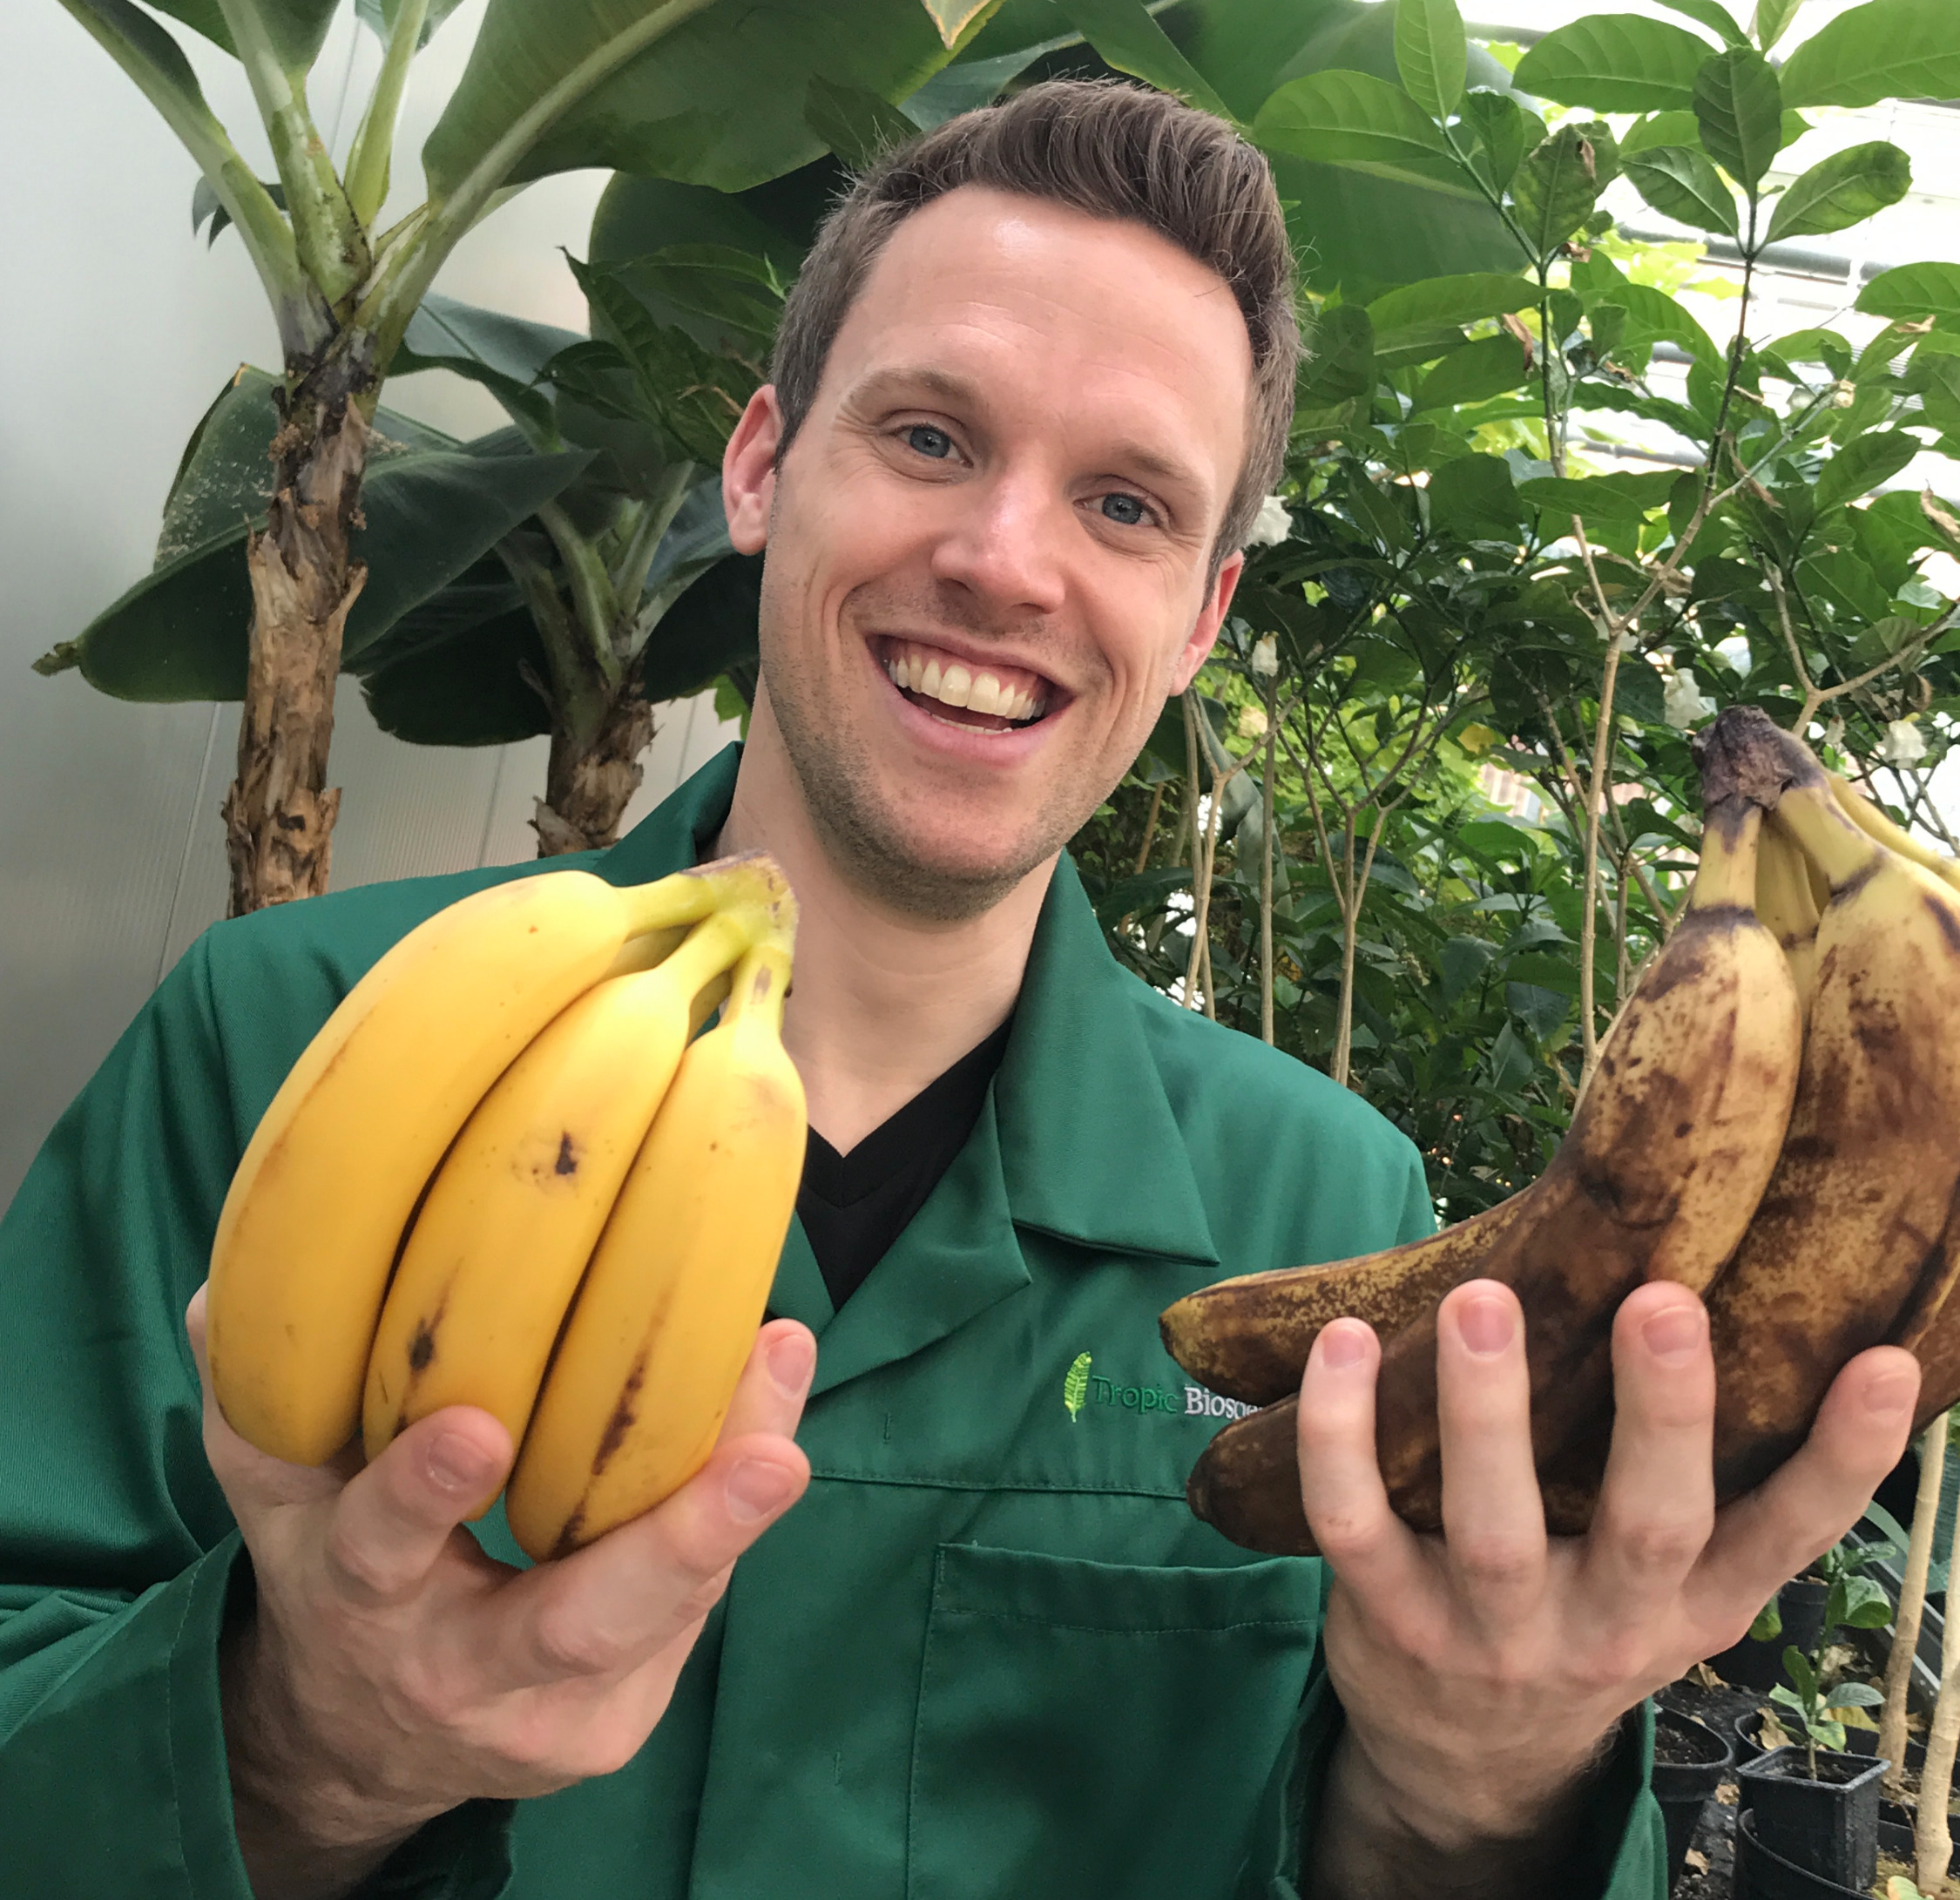 Greg holding gene edited bananas